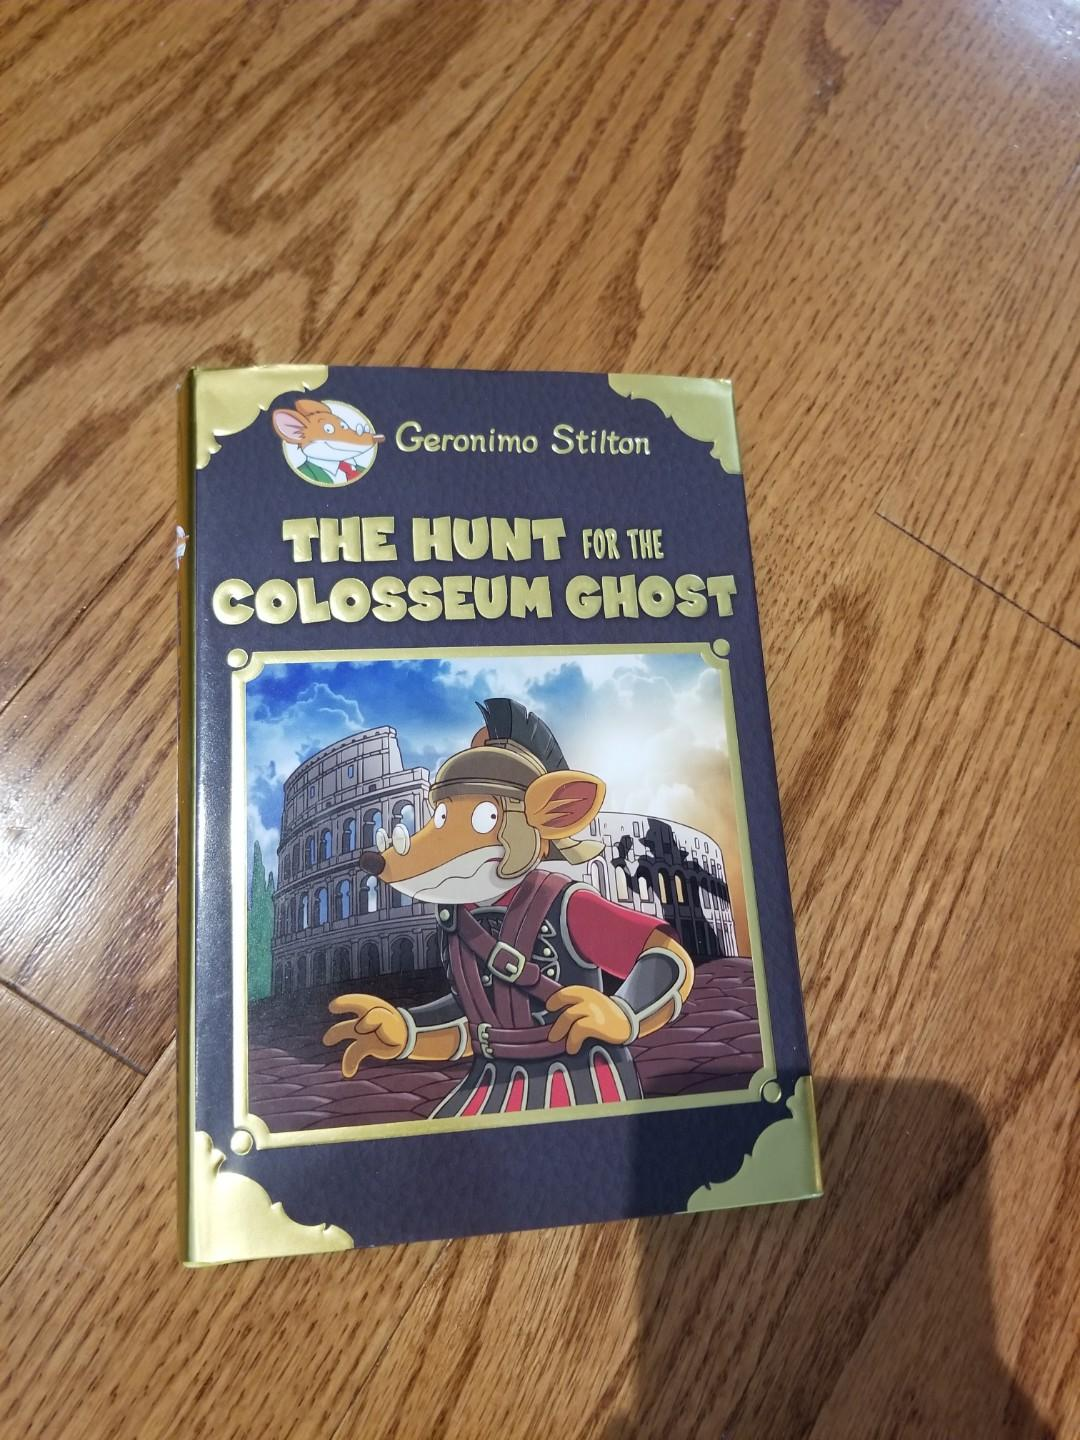 Geronimo Stilton - The Hunt for the Colosseum Ghost  (hardcover)